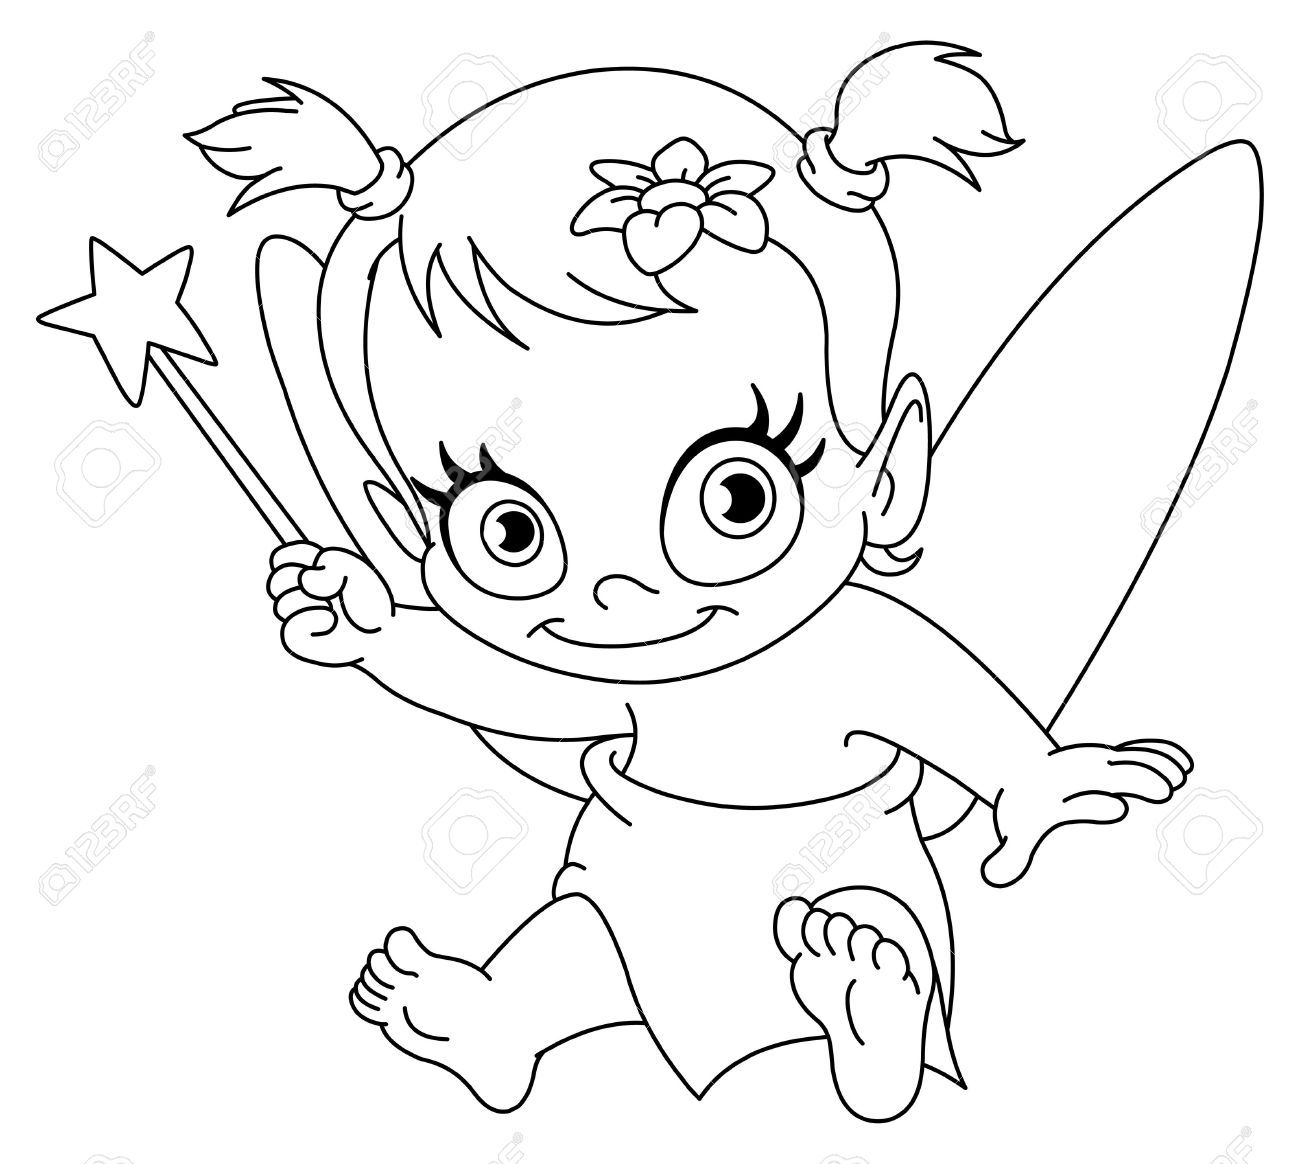 cute newborn baby baby coloring pages newborn baby girl coloring pages coloring home newborn baby cute pages coloring baby